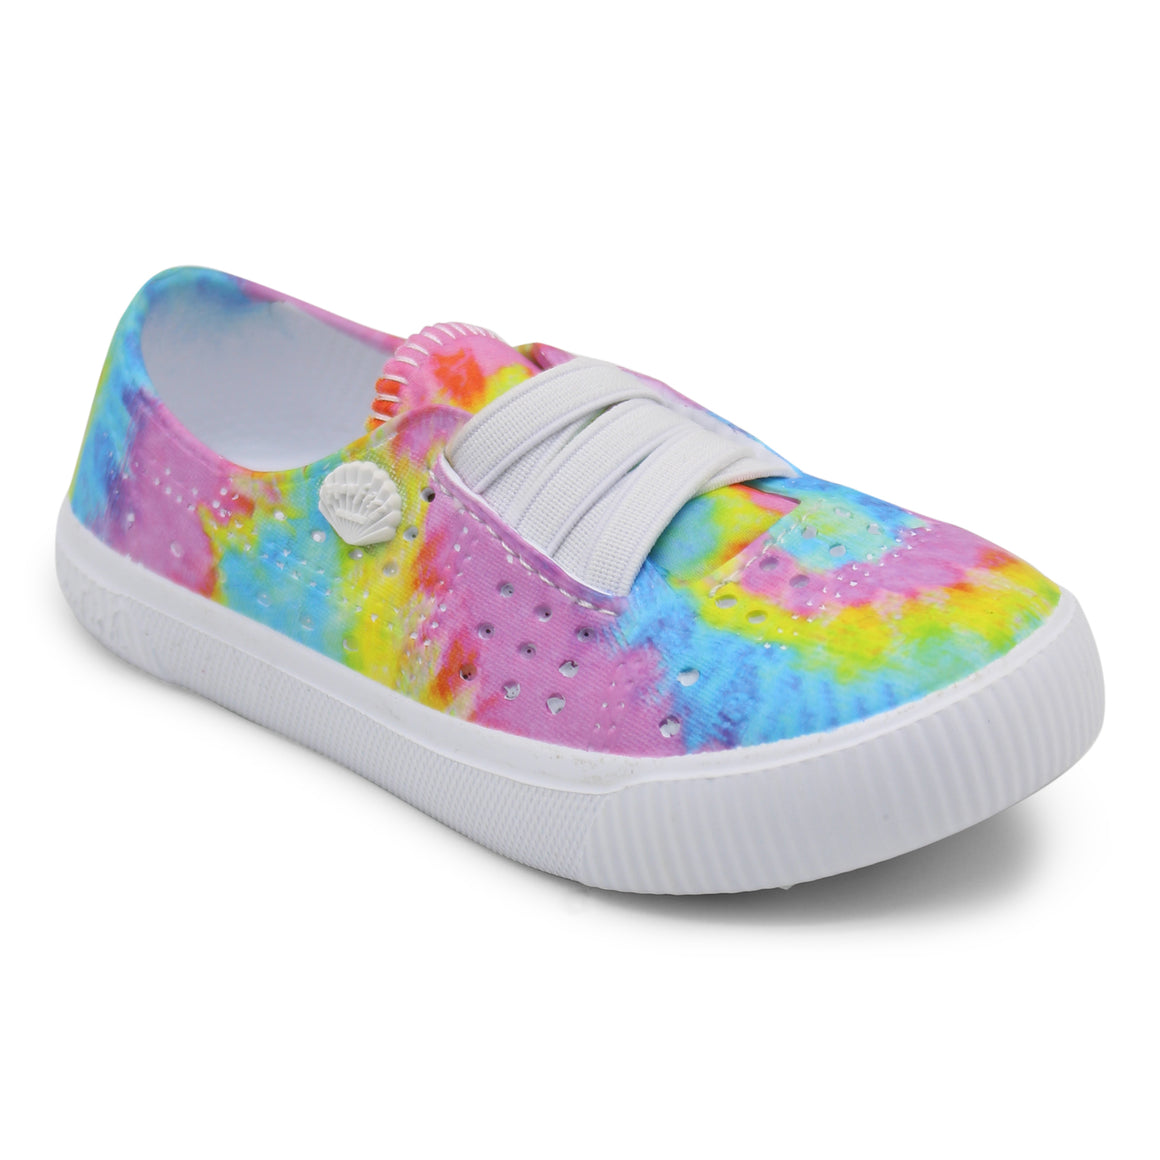 Blowfish Toddler's Rioo-T Slip On Shoe Pastel TieDye/ White